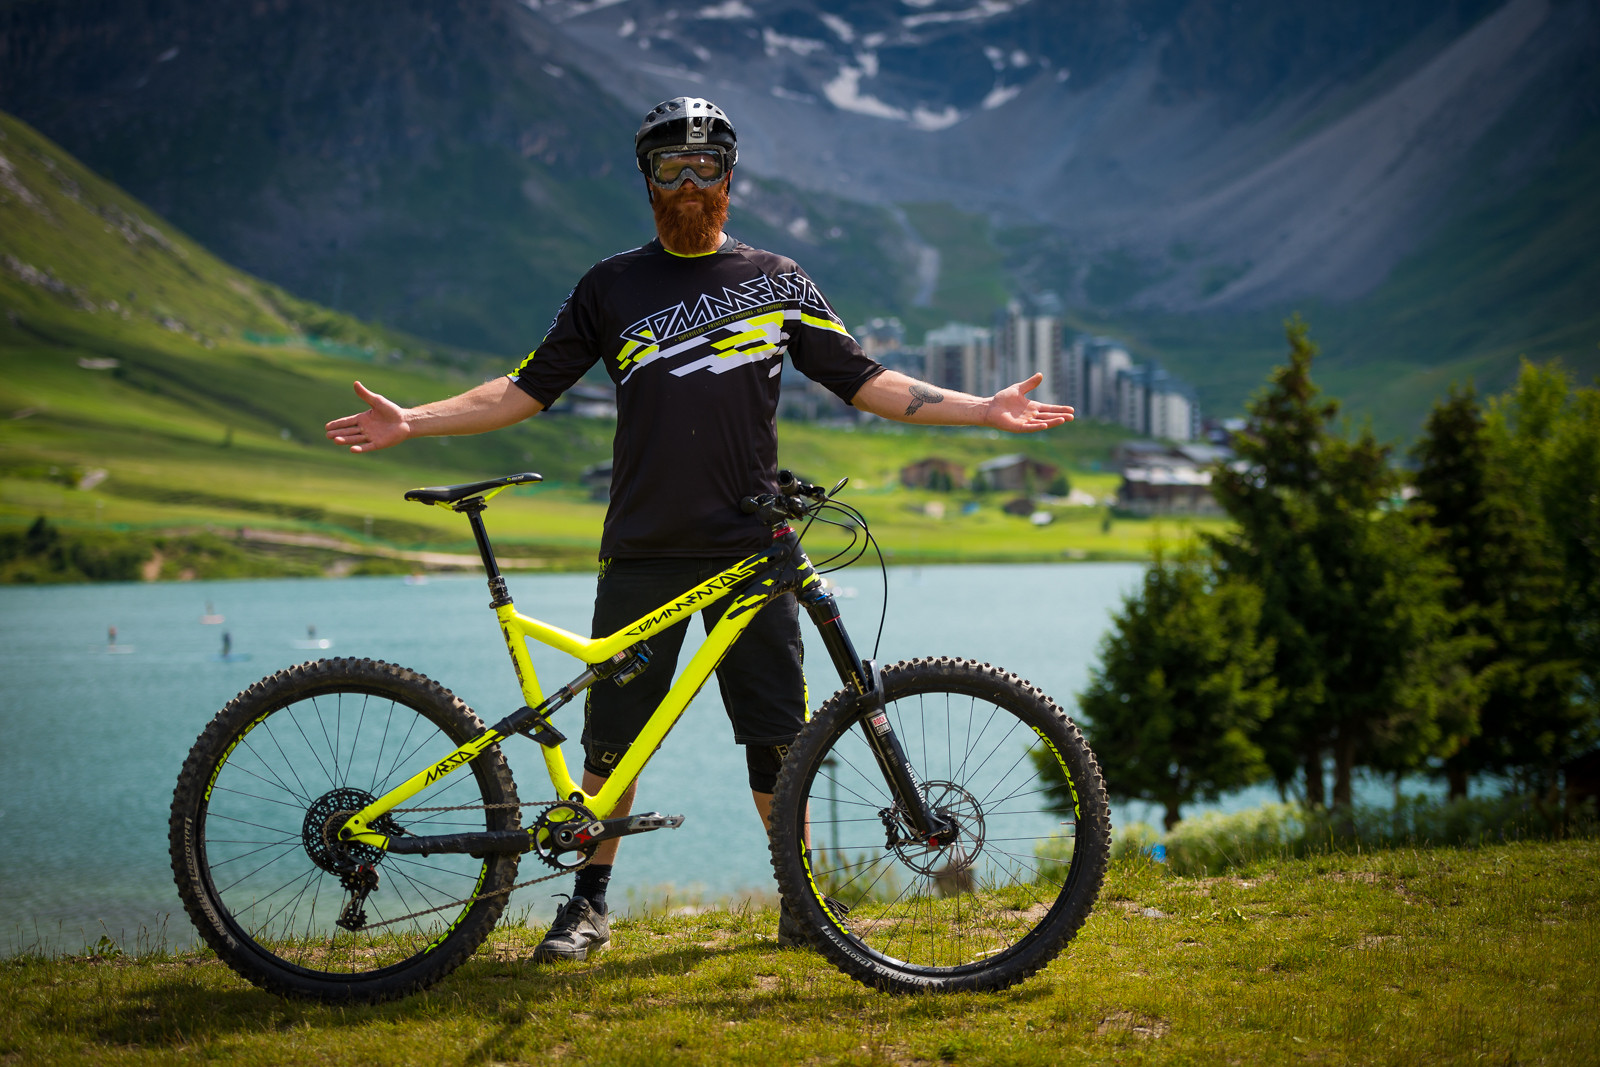 PEF's Commencal Meta V4 - iceman2058 - Mountain Biking Pictures - Vital MTB